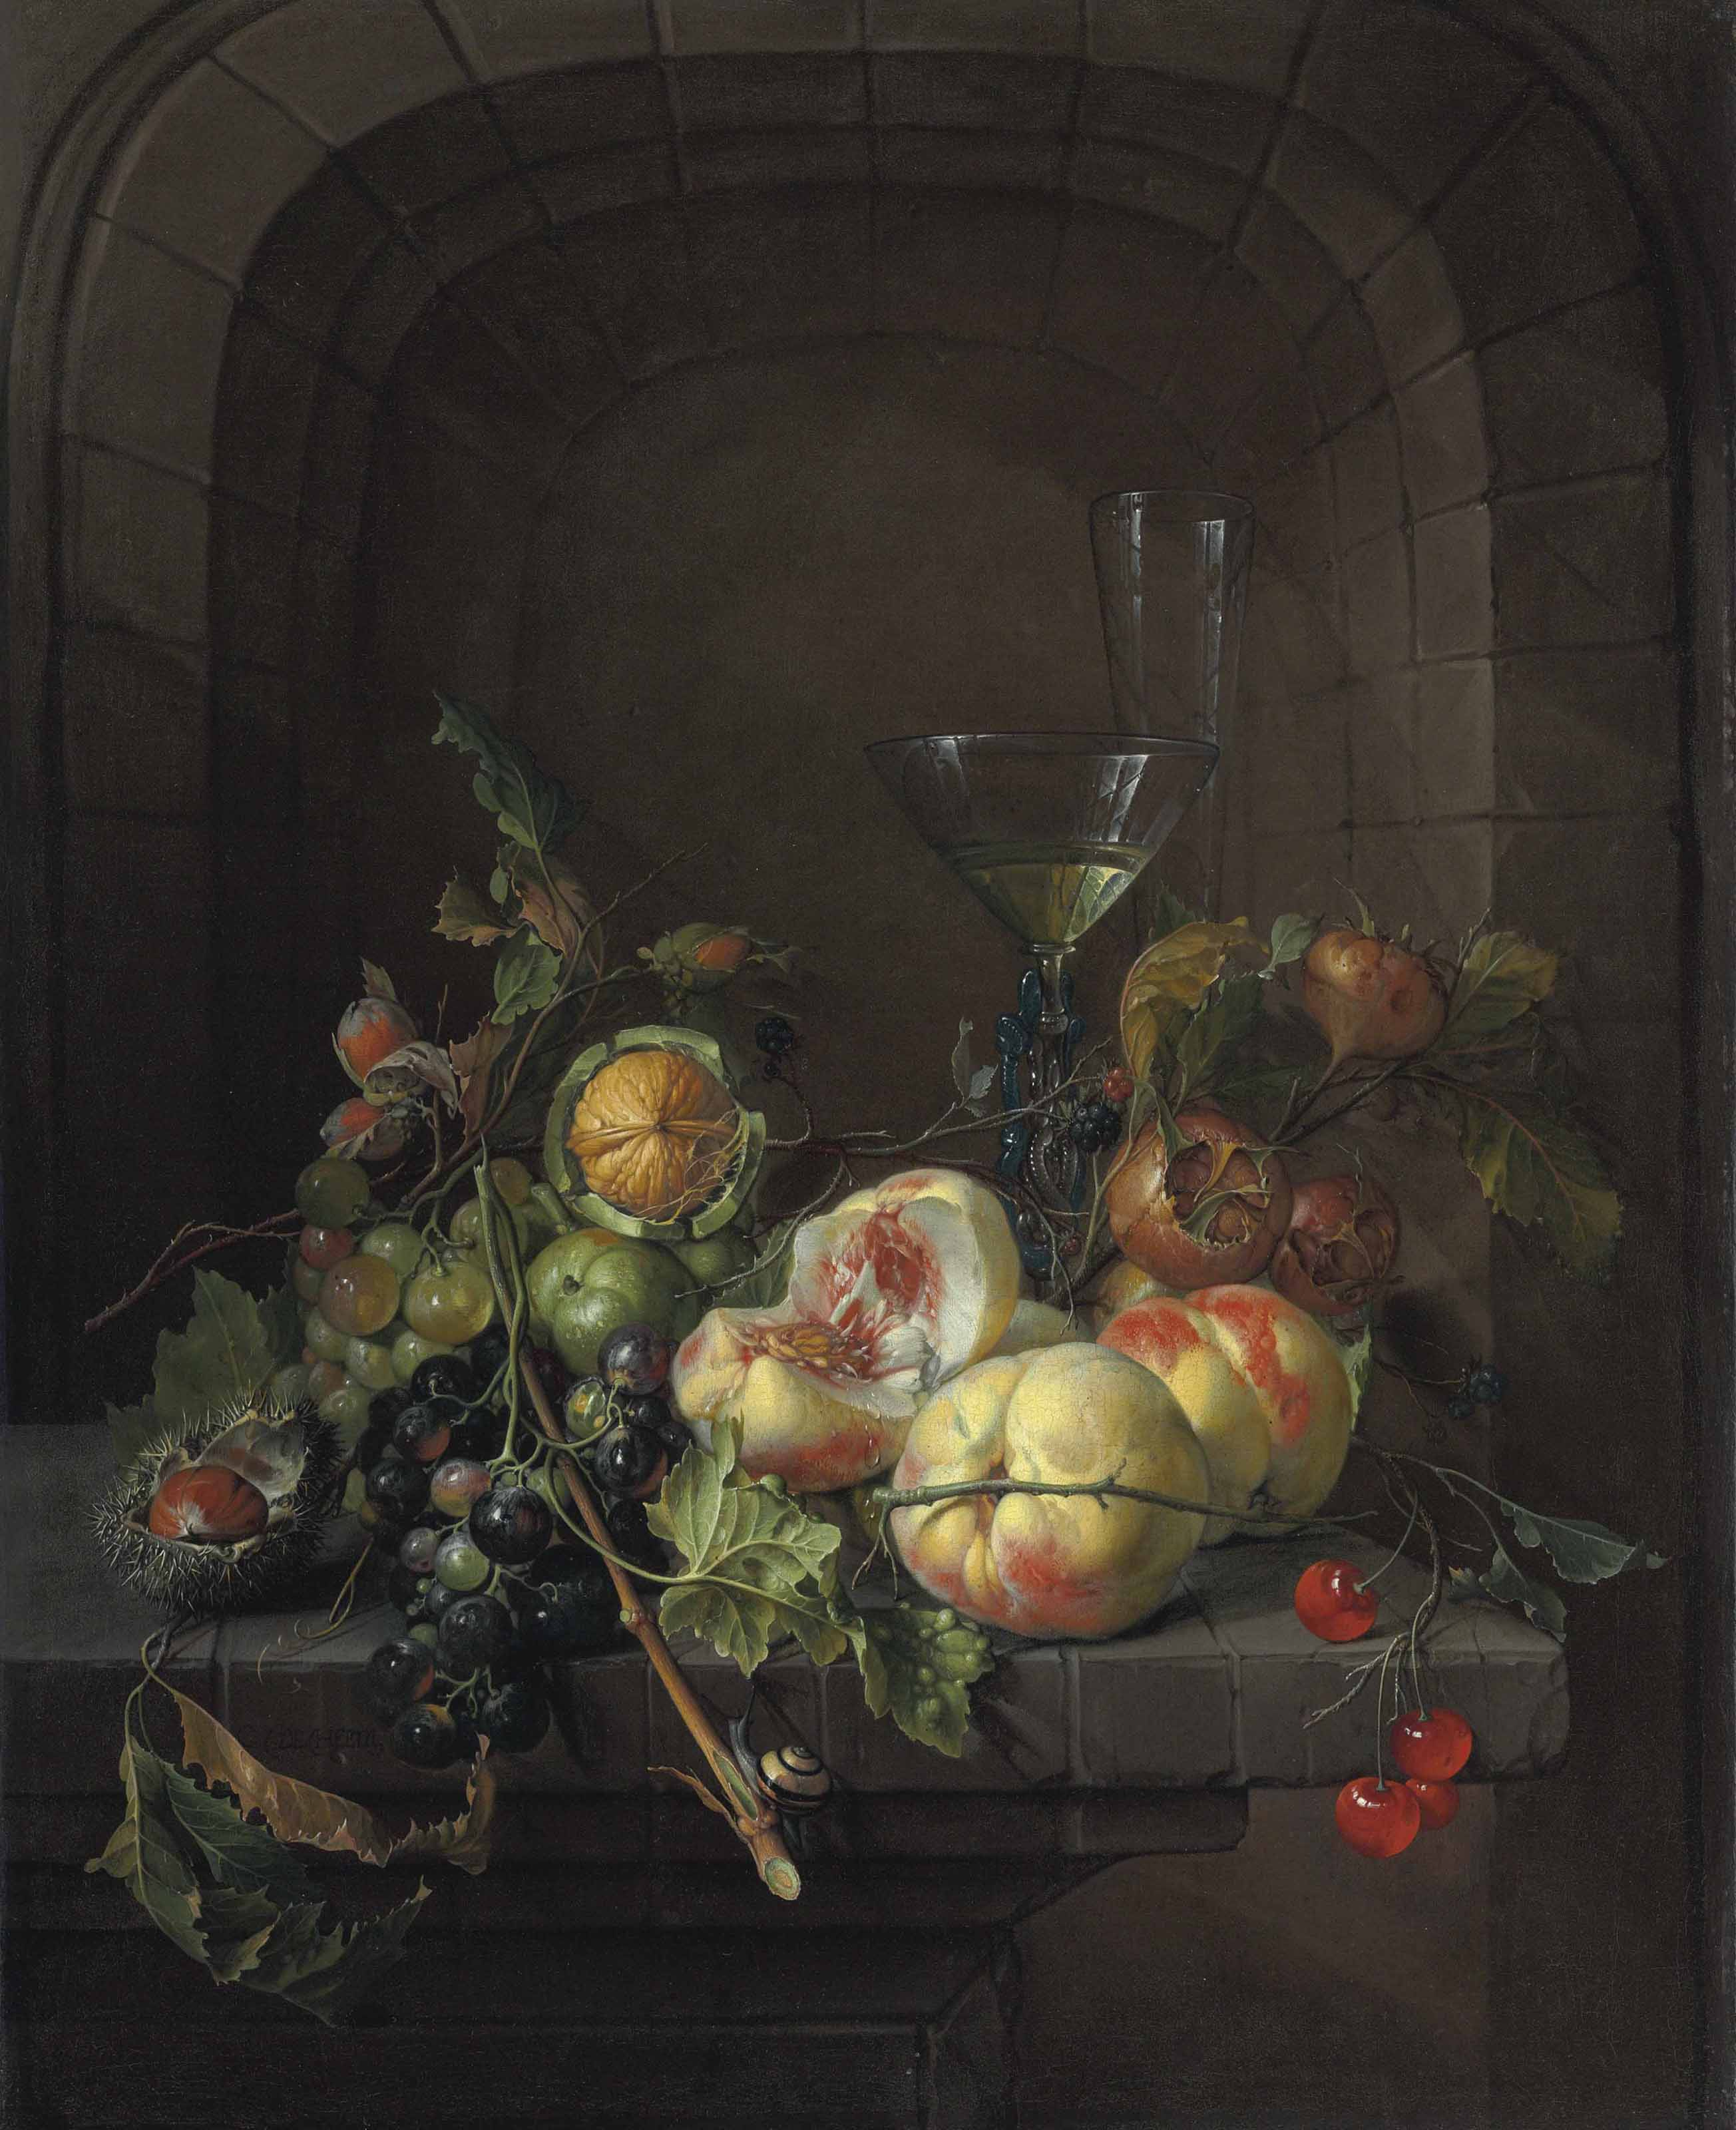 Peaches, grapes, medlars, walnuts, a hazelnut, cherries, and black raspberries with a snail, a façon de venise glass of wine, and a flute glass on a stone ledge before a niche